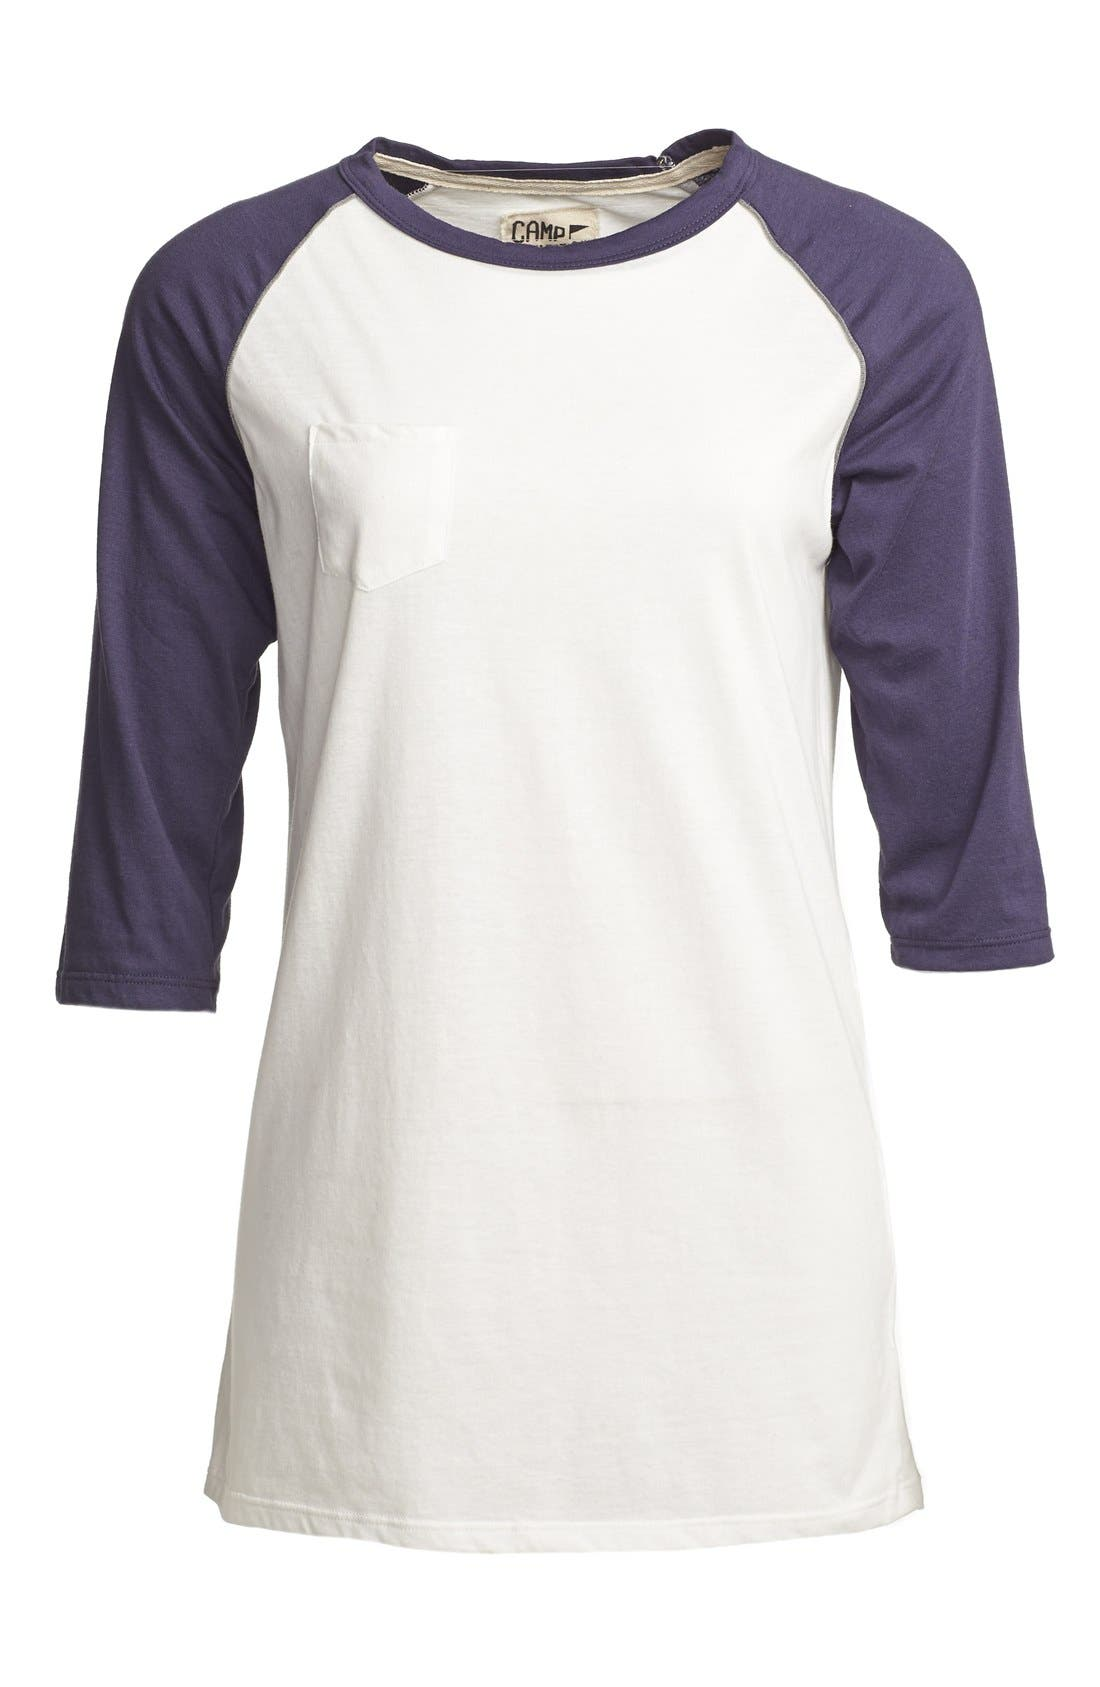 Alternate Image 1 Selected - CAMP Collection 'Rookie' Baseball Tee (Women)